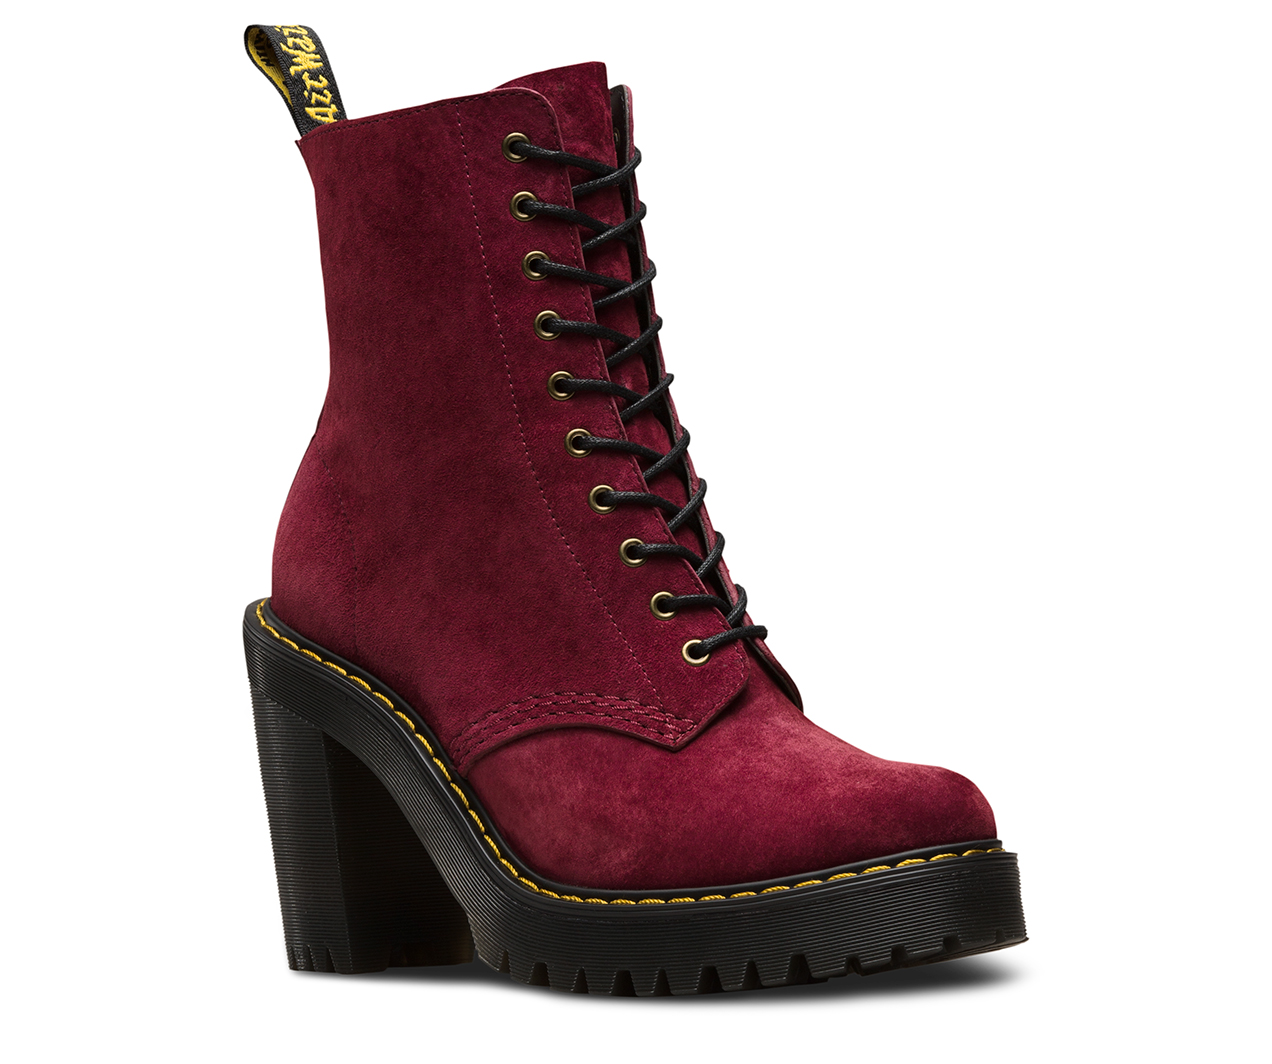 Boots Dr Martens Kendra Wine Soft Buck PHc9gOW